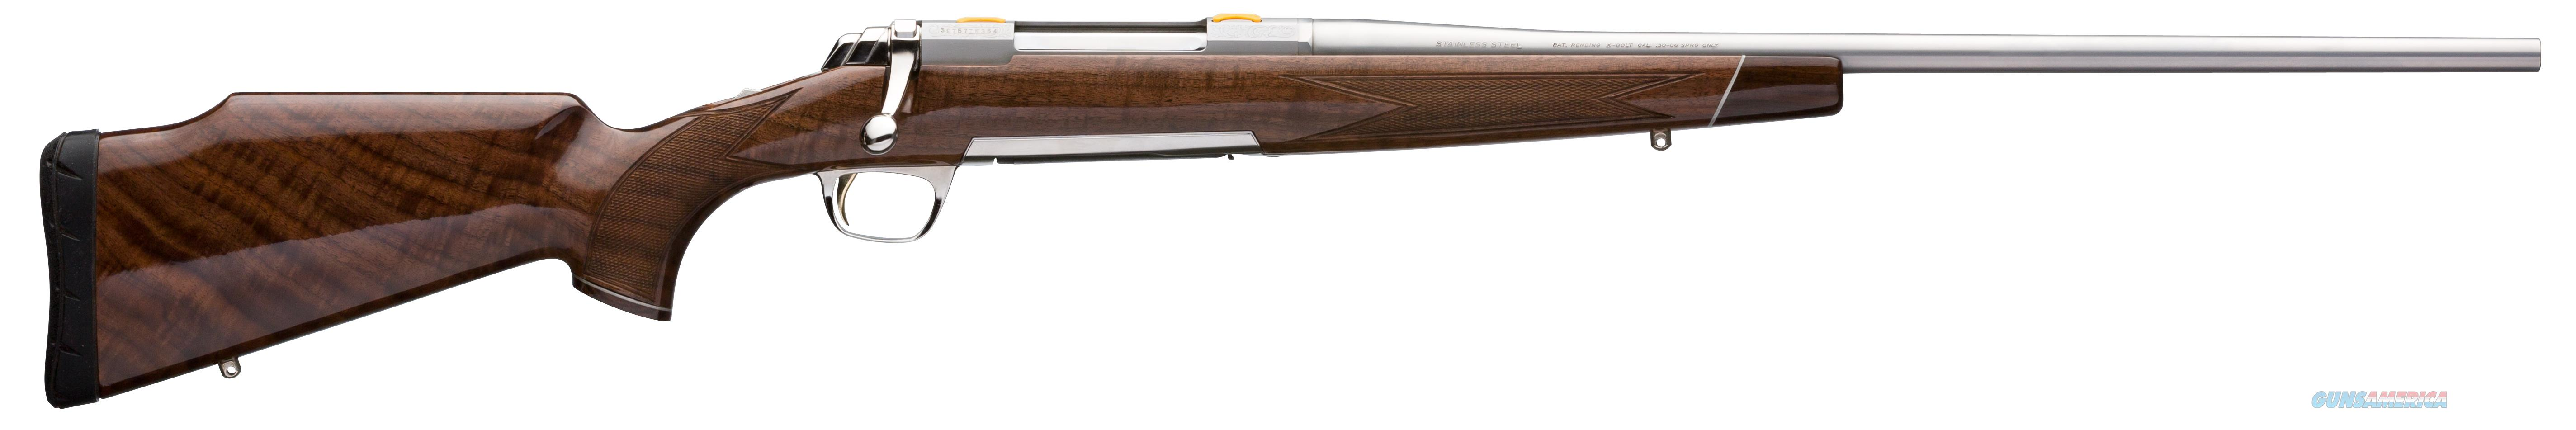 "Browning 035235224 X-Bolt White Gold Bolt 270 Winchester 22"" 4+1 Walnut Stk Stainless Steel  Guns > Rifles > B Misc Rifles"